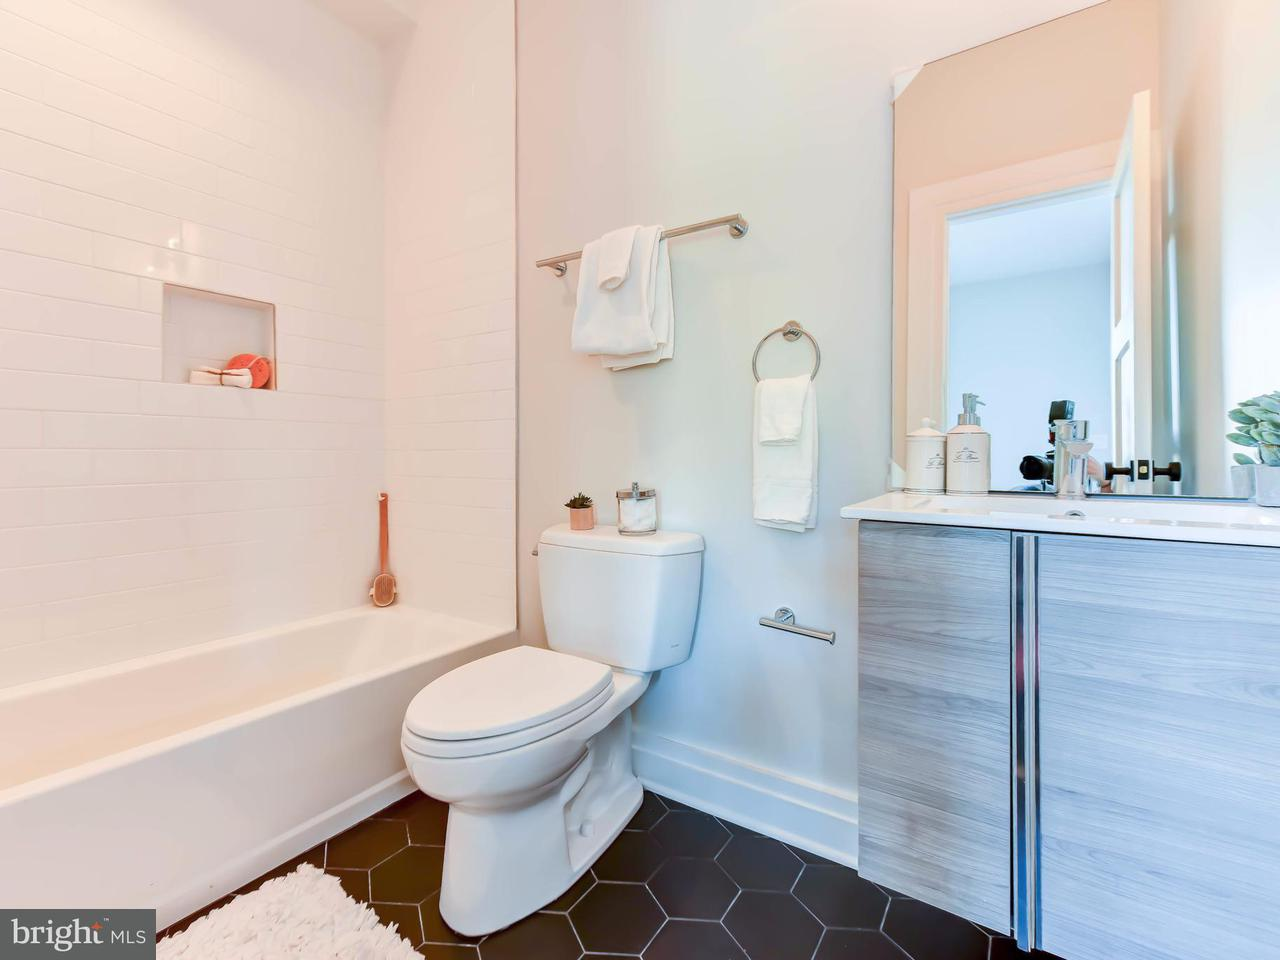 Additional photo for property listing at 71 U St Nw #2 71 U St Nw #2 Washington, 哥倫比亞特區 20001 美國